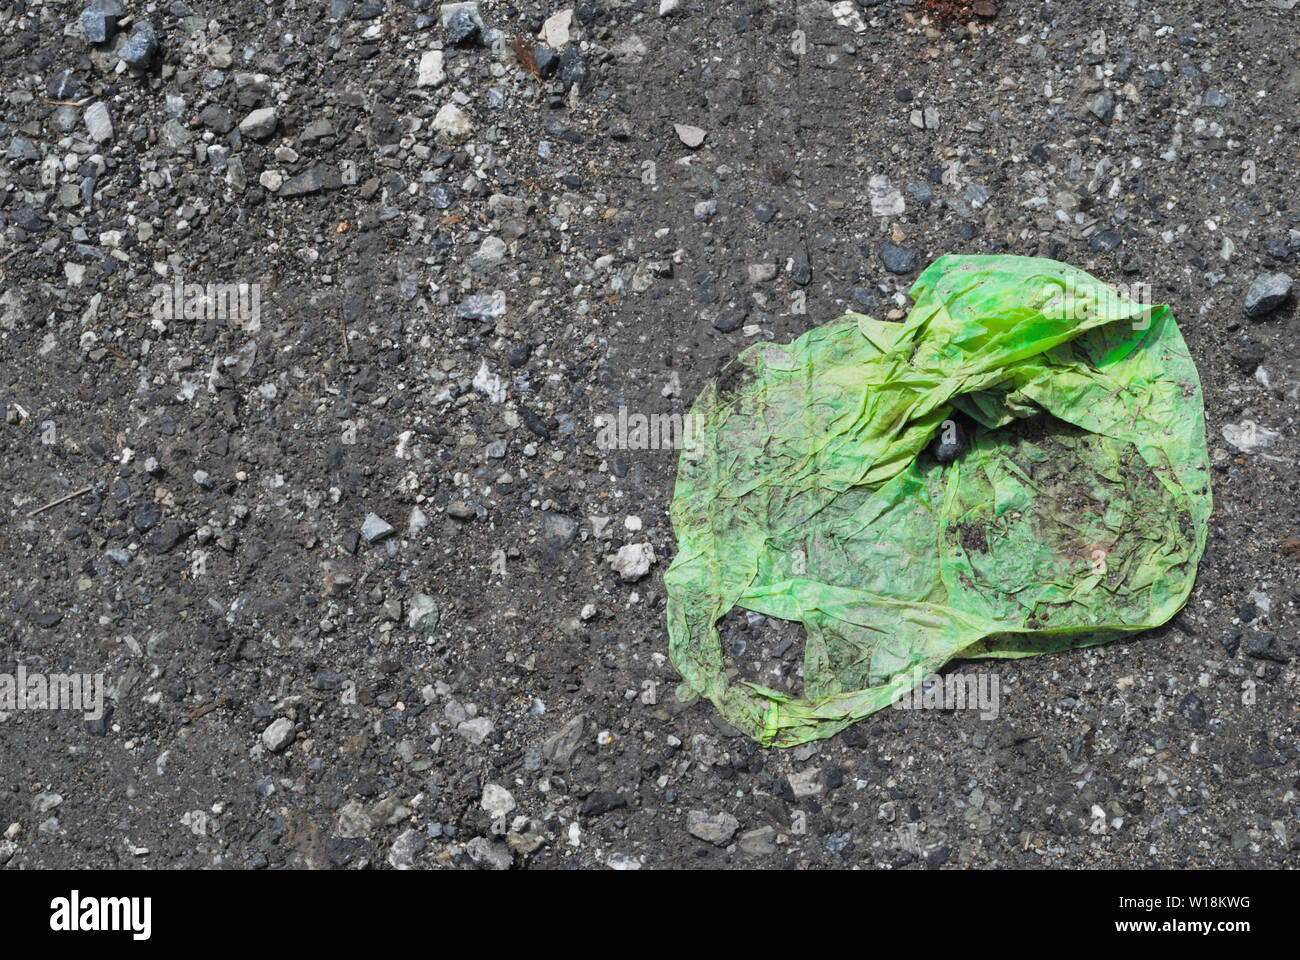 The green plastic bag was blown to the parking lot and was hit by a car. - Stock Image